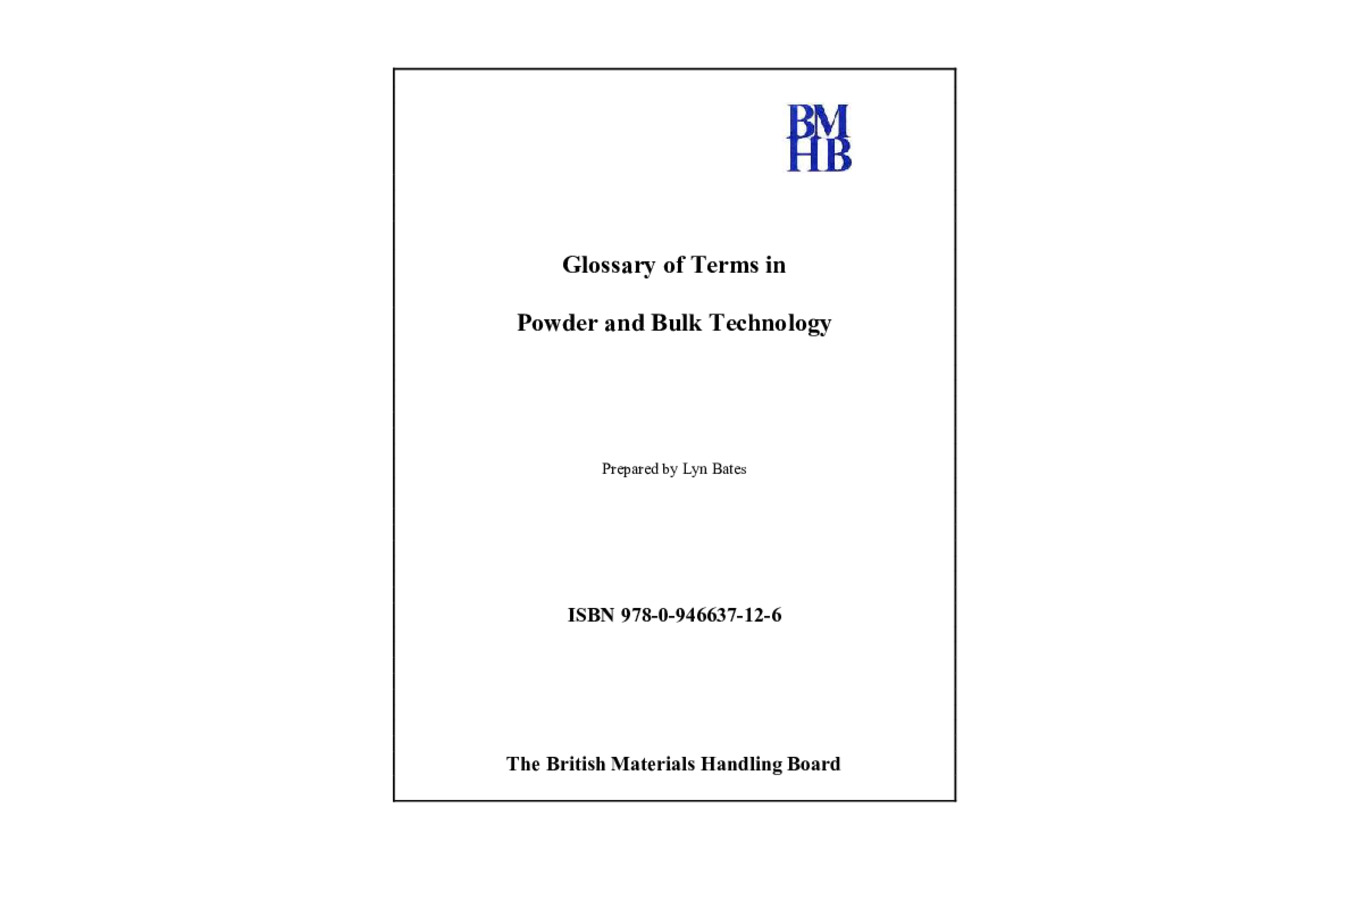 Glossary of Terms in Powder and Bulk Technology  An explanation of terms relating to particle technology as an introductory tool for non-specialists, newcomers and students in the field.